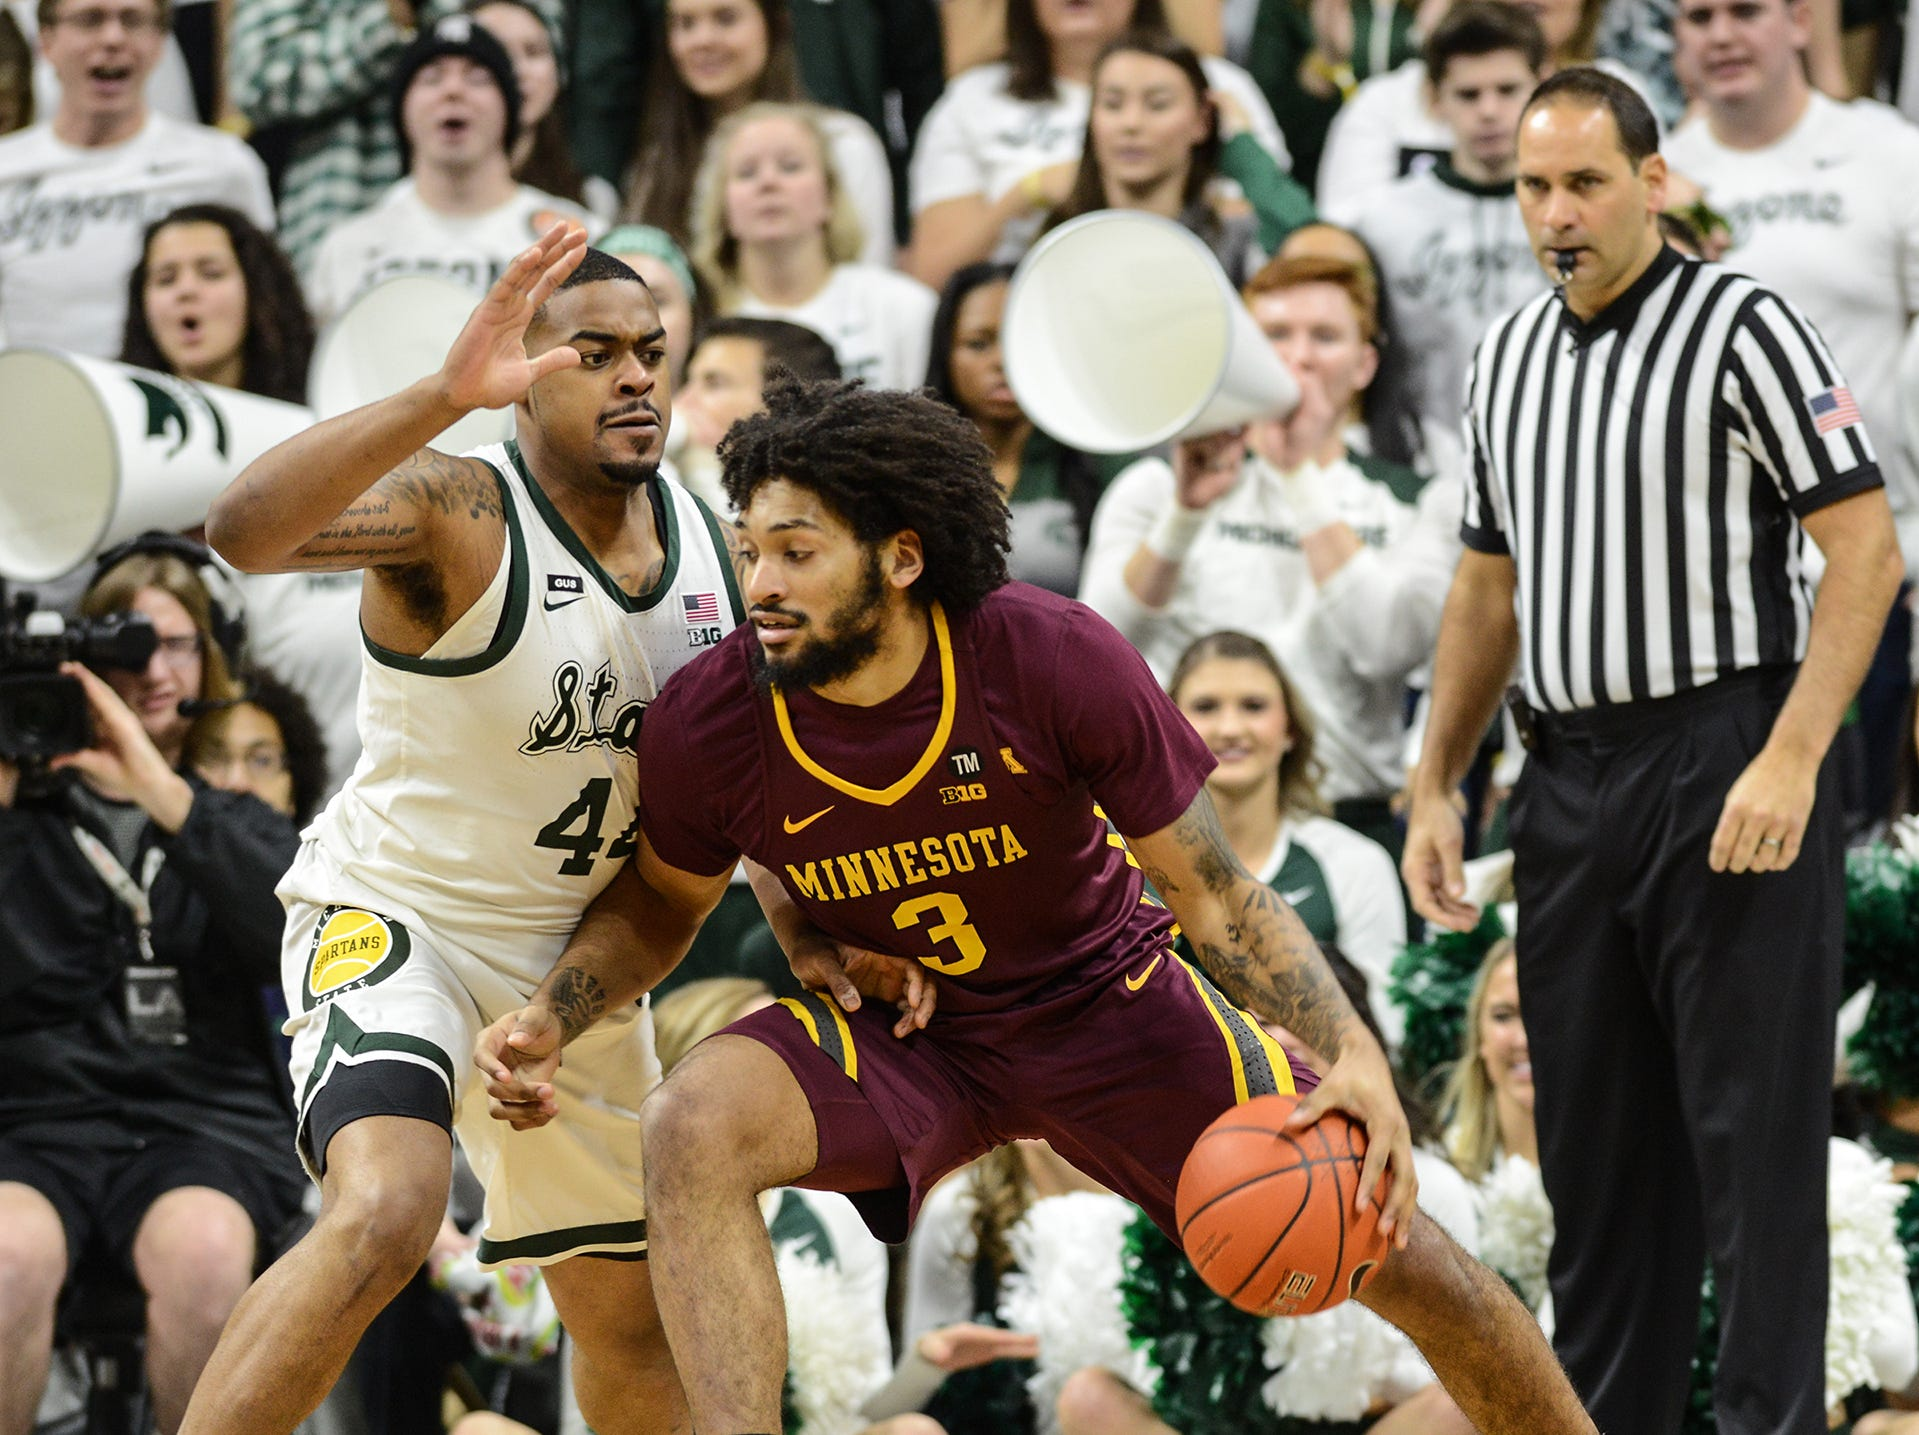 MSU forward Nick Ward (44)guards Minnesota's Jordan Murphy (3) Saturday, Feb. 9, 2019. MSU won 79-55.